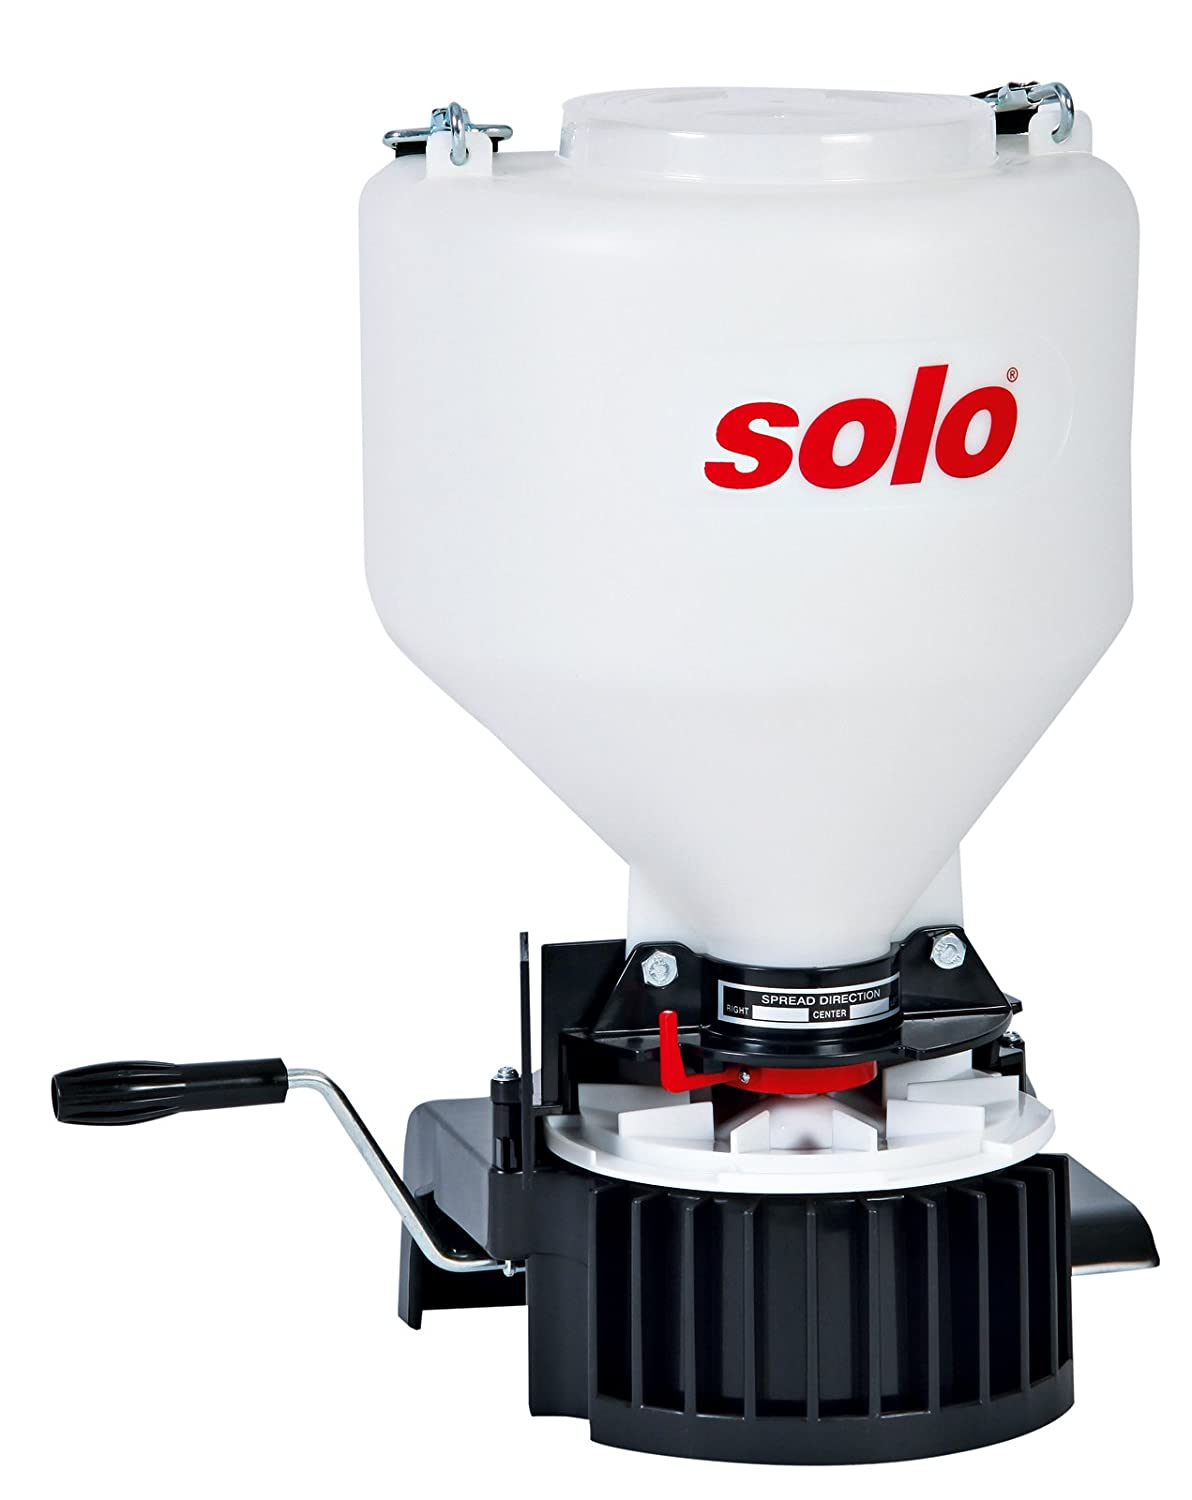 Solo 421 - Top Rated Portable Spreader